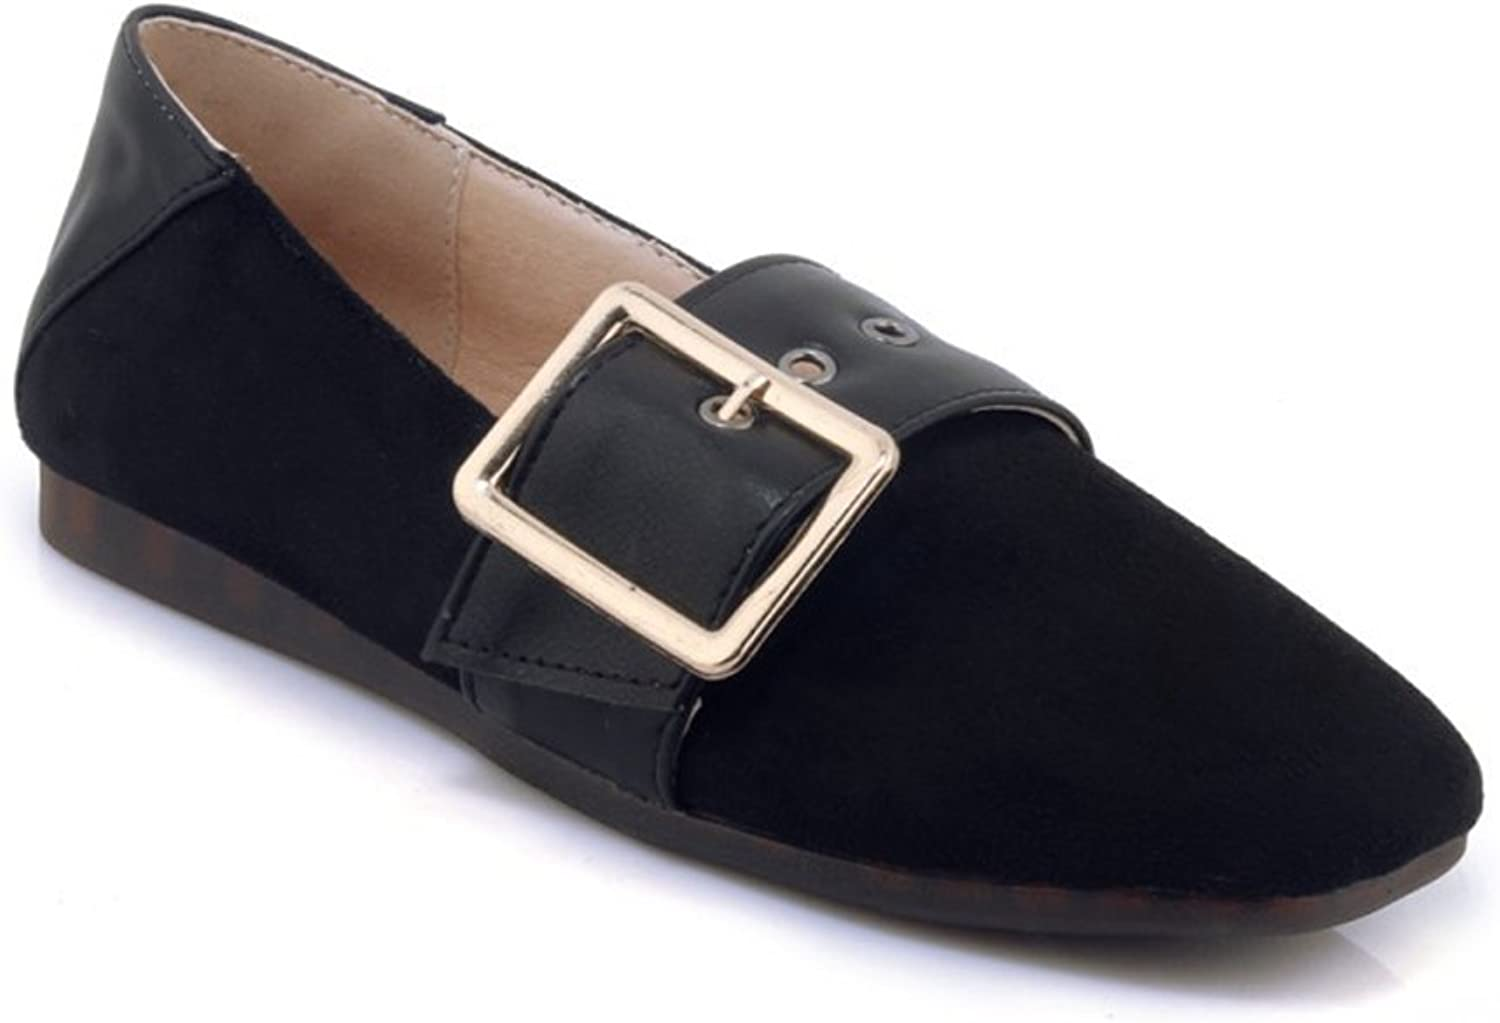 Women's Casual Ballet Flats Fashion Buckle Dress Walking shoes Square Head Slip On Loafers